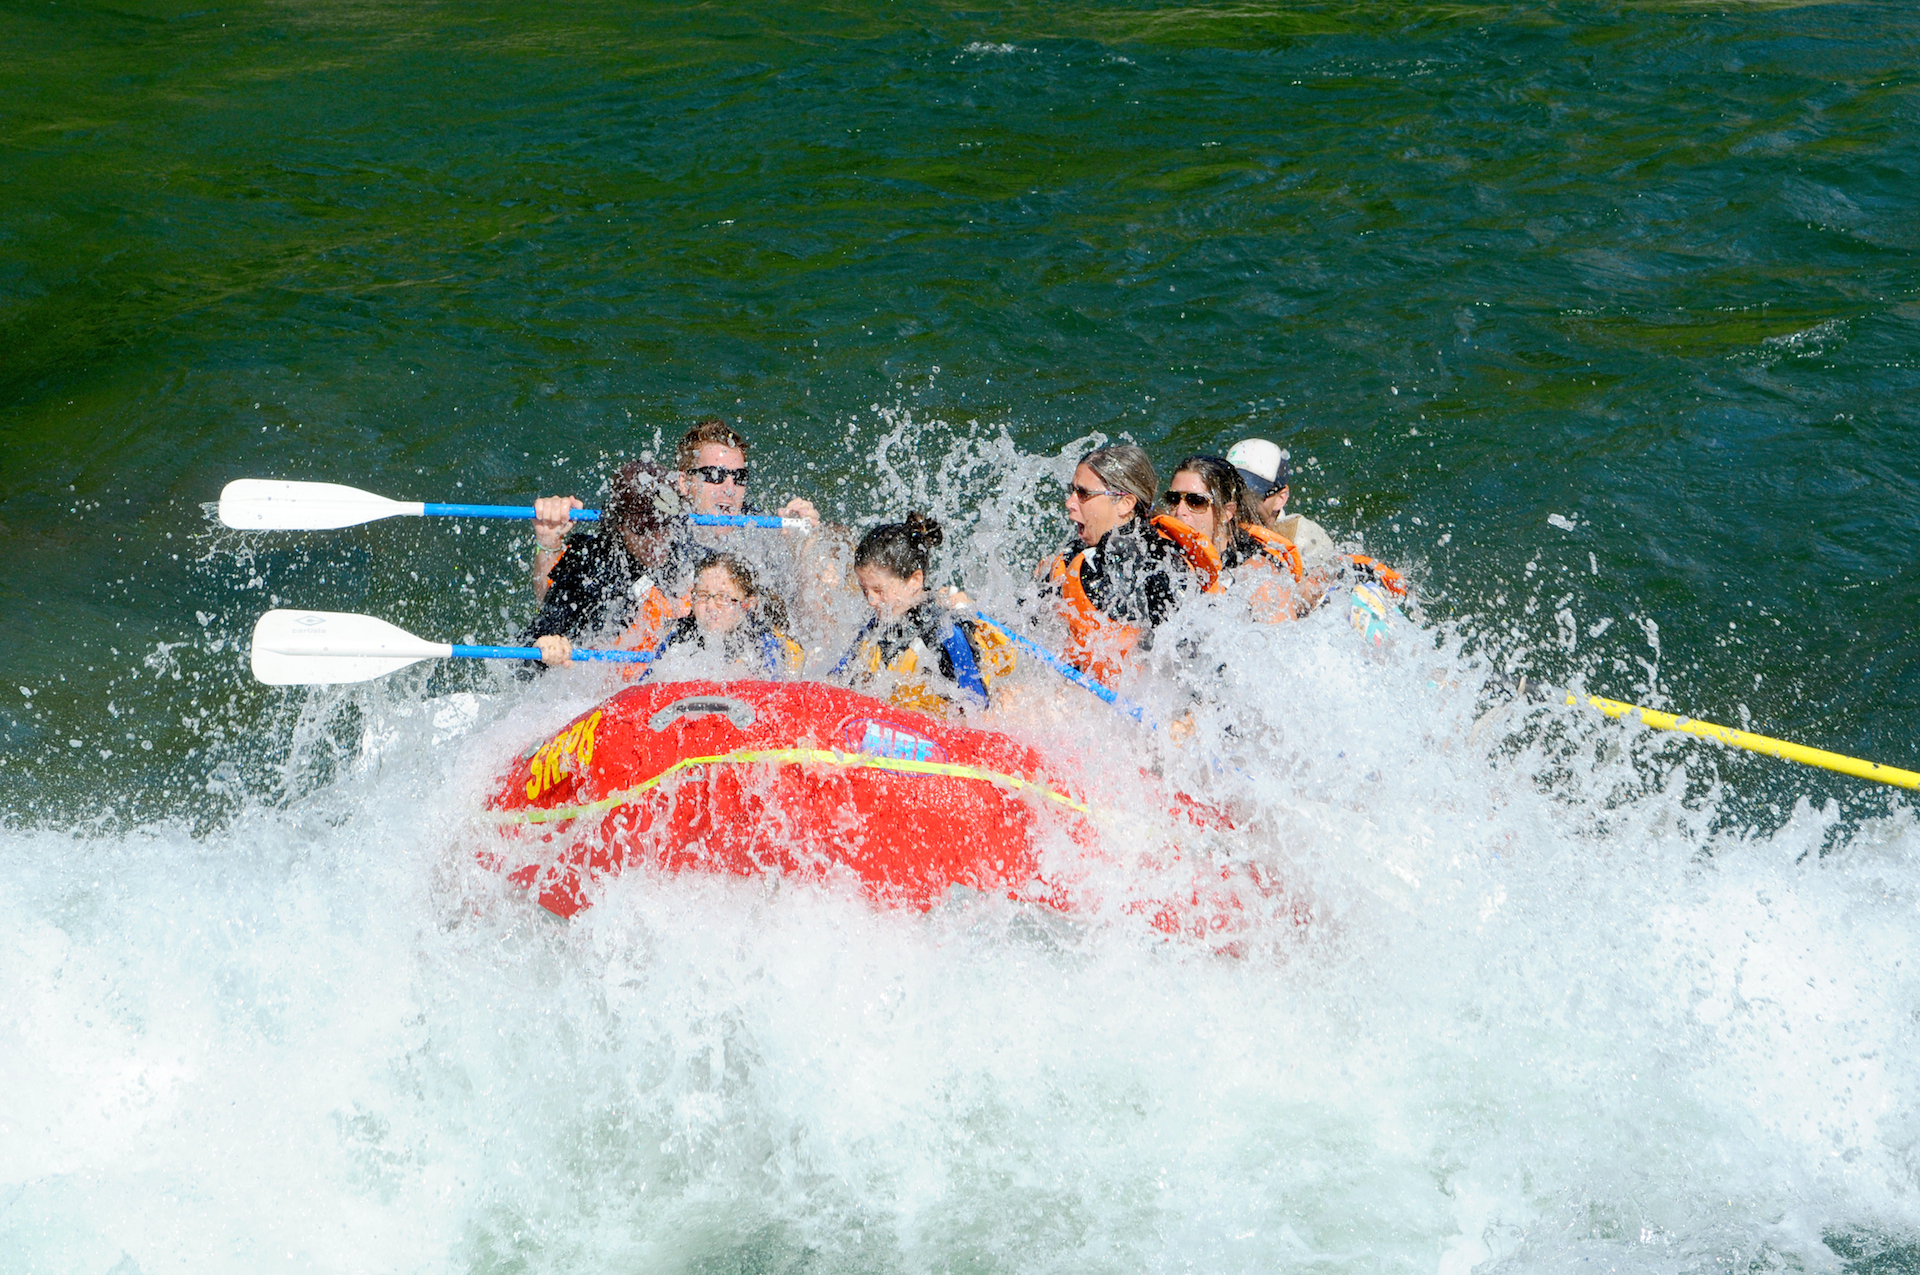 rafting in jackson hole